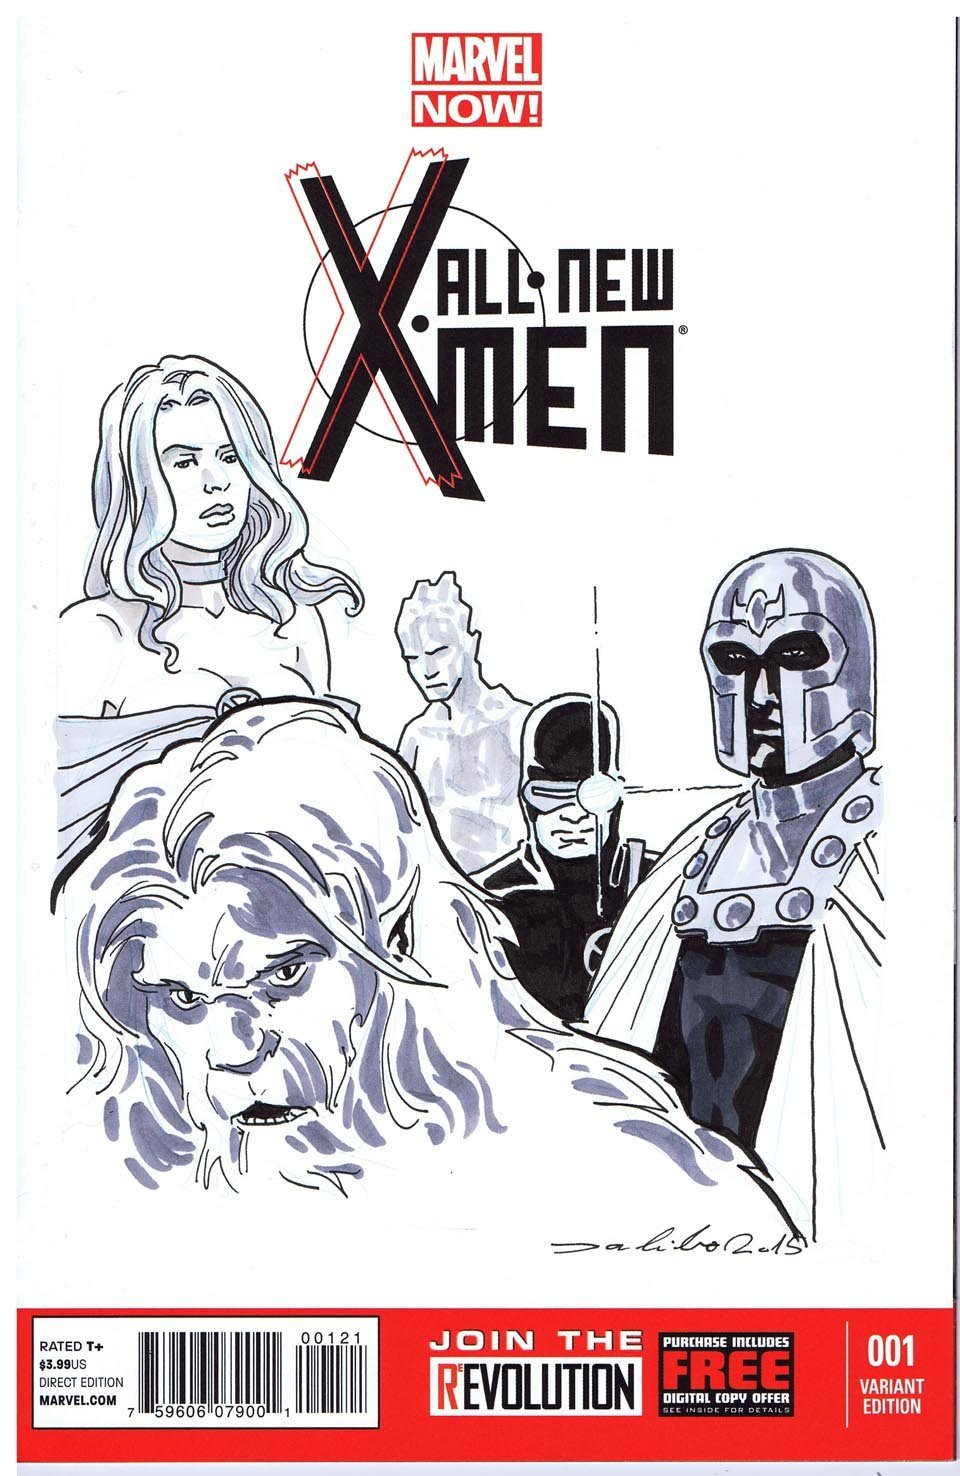 All New X-men Sketch Cover